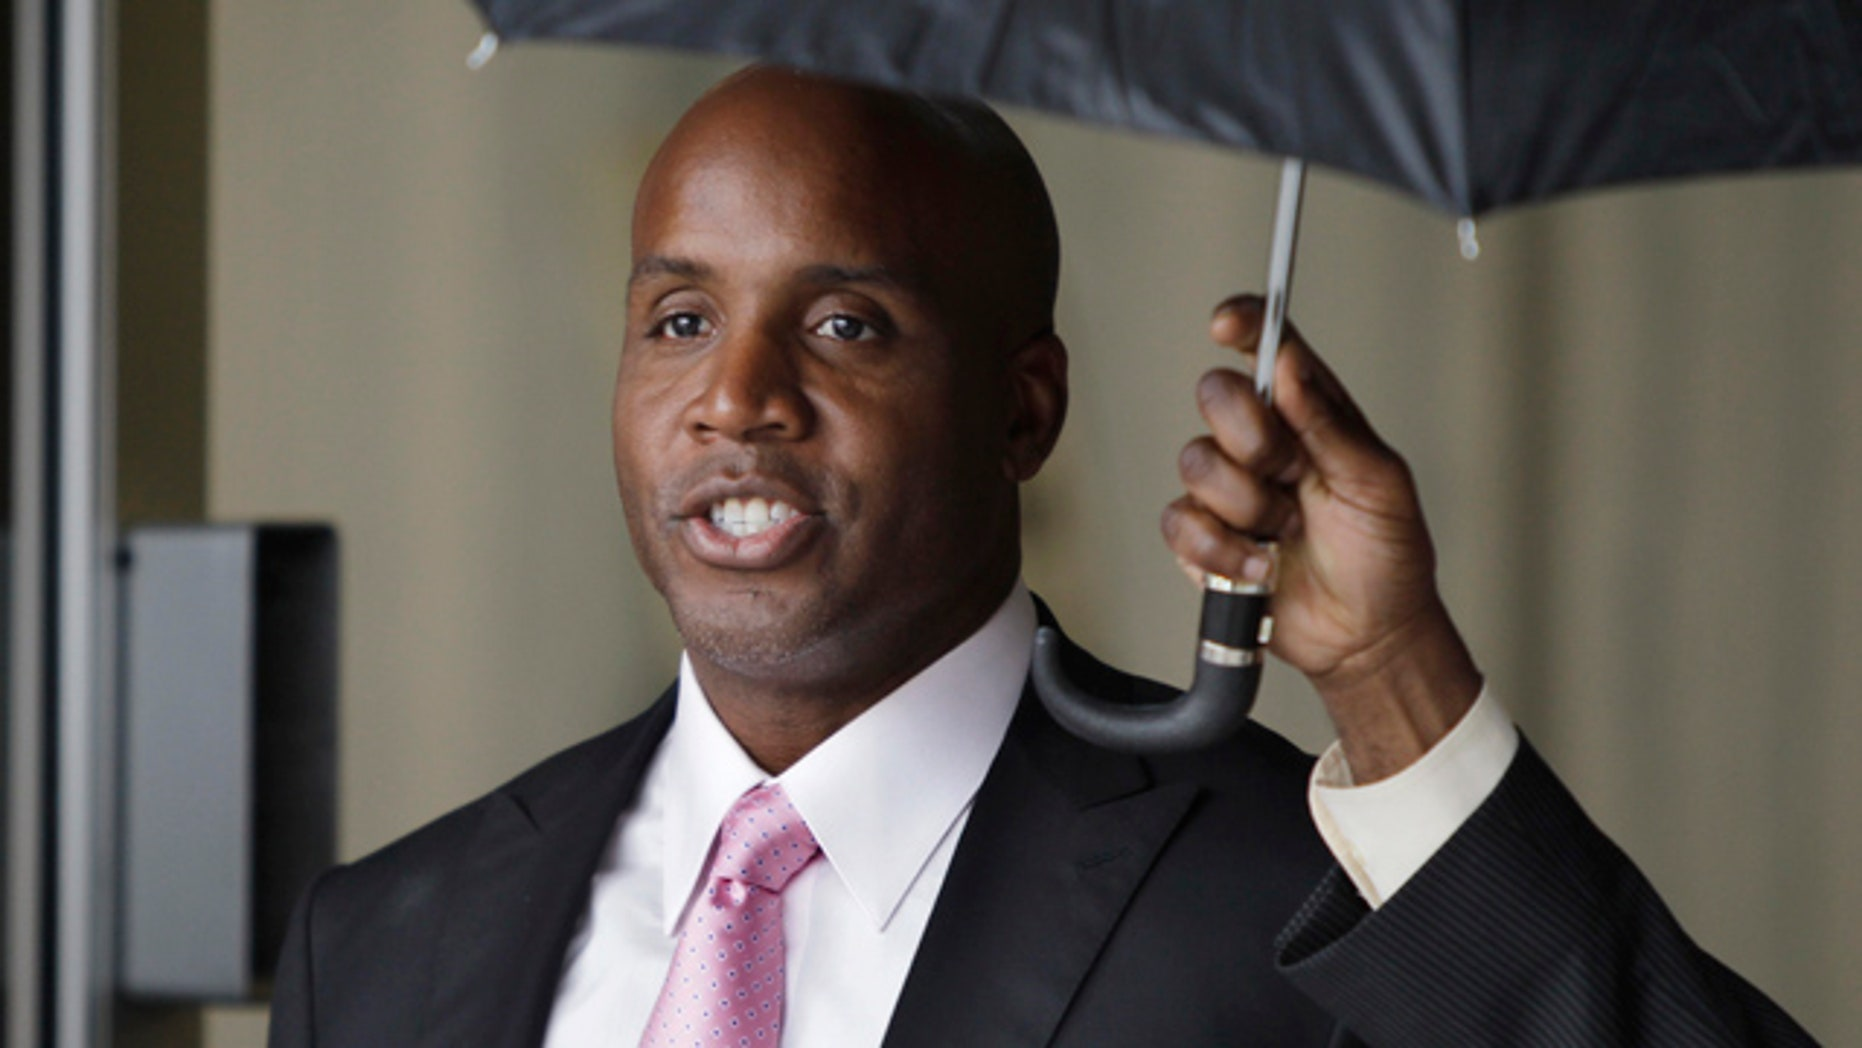 March 24, 2011: Barry Bonds leaves the federal courthouse during his baseball perjury trial in San Francisco.